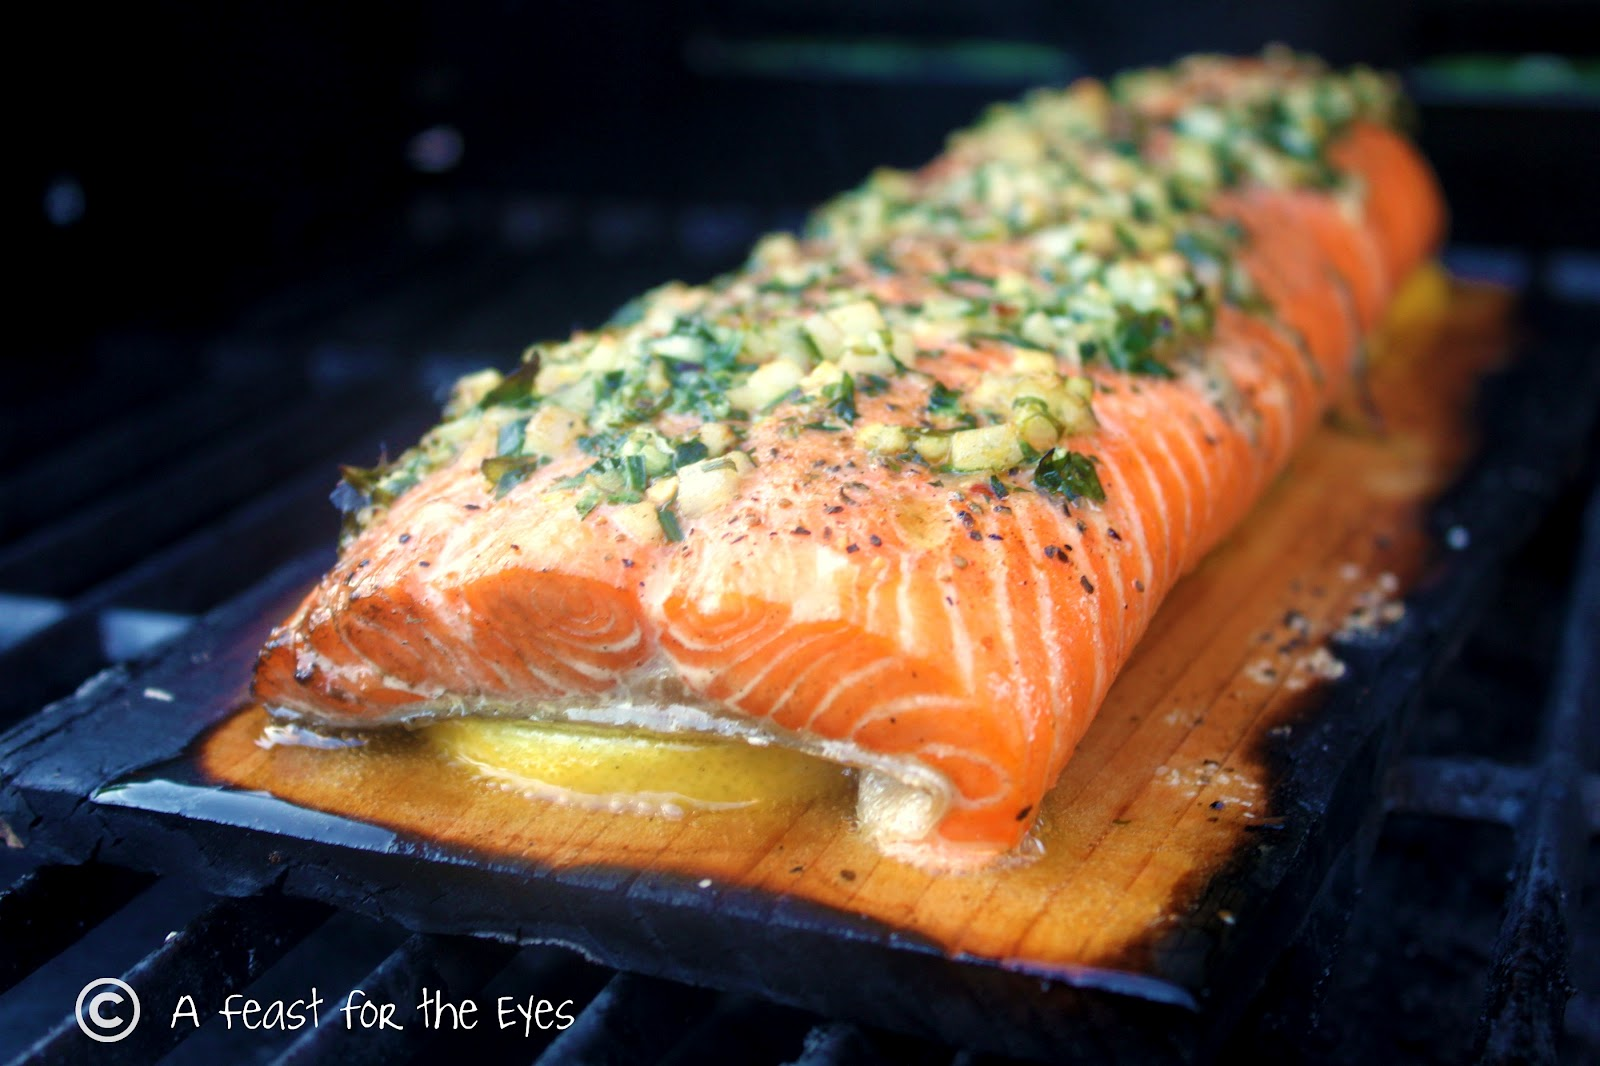 Feast for the Eyes: Cedar Plank Grilled Salmon With Tarragon Herbs